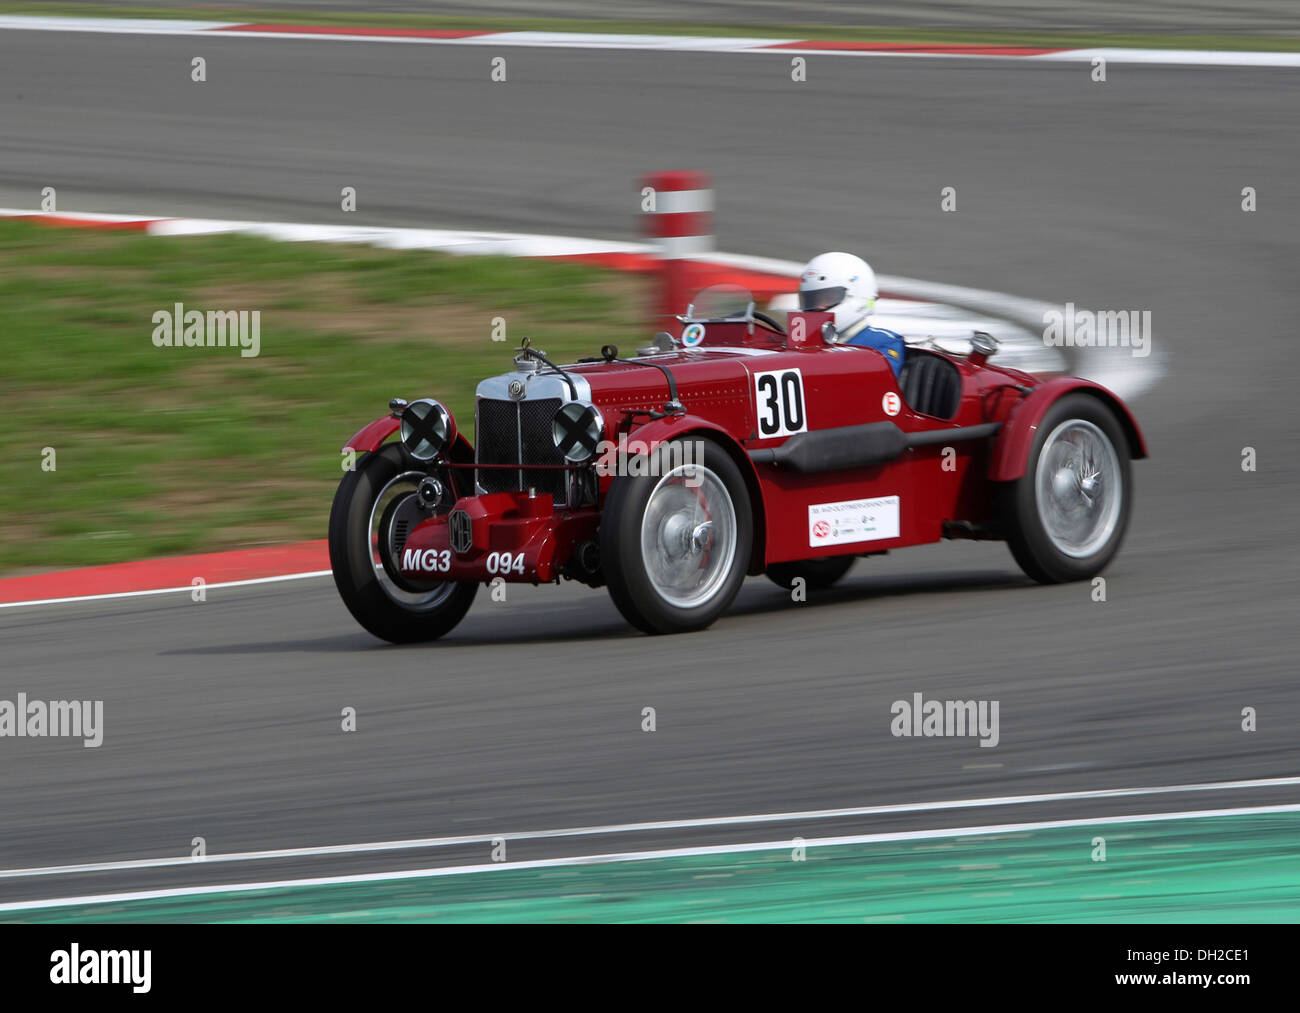 Race of the pre-war cars, Guenter Krenn in the MG Magnette from ...